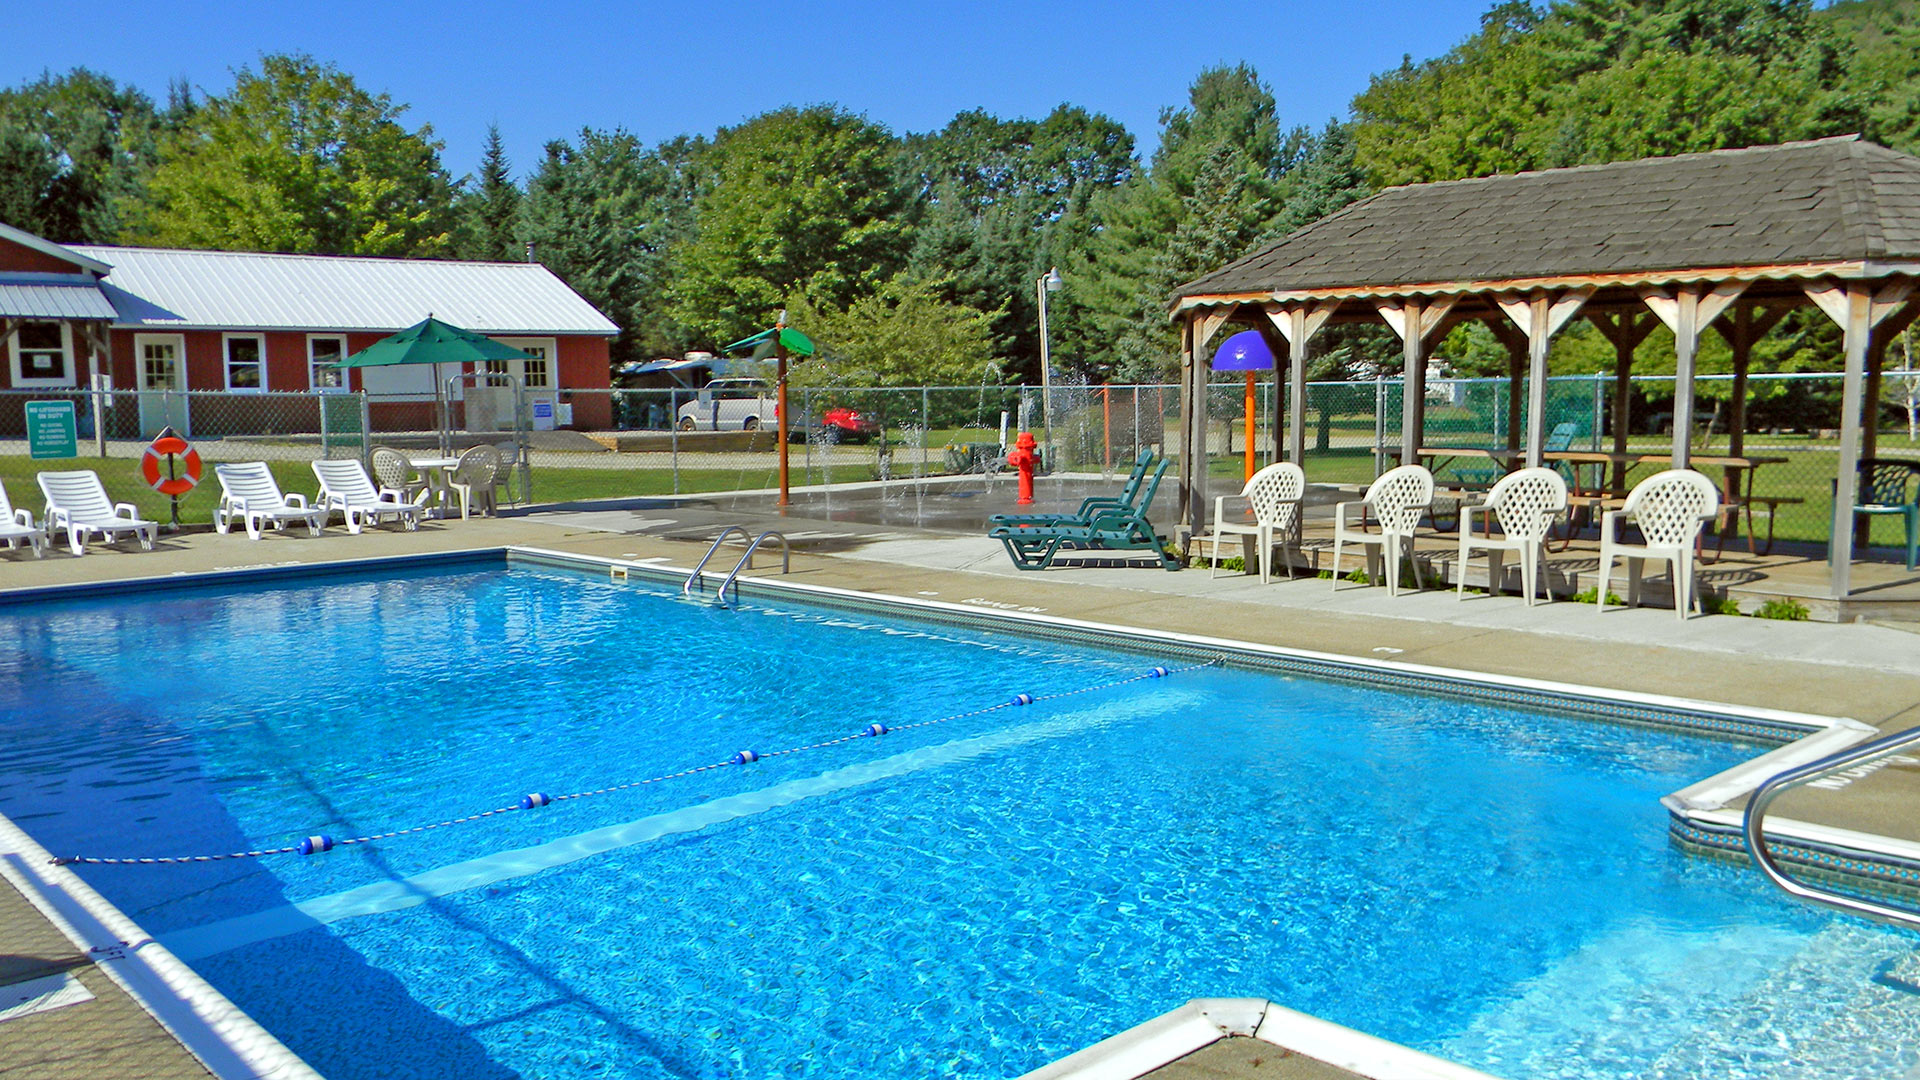 Swimming pool at Scenic View Campground.